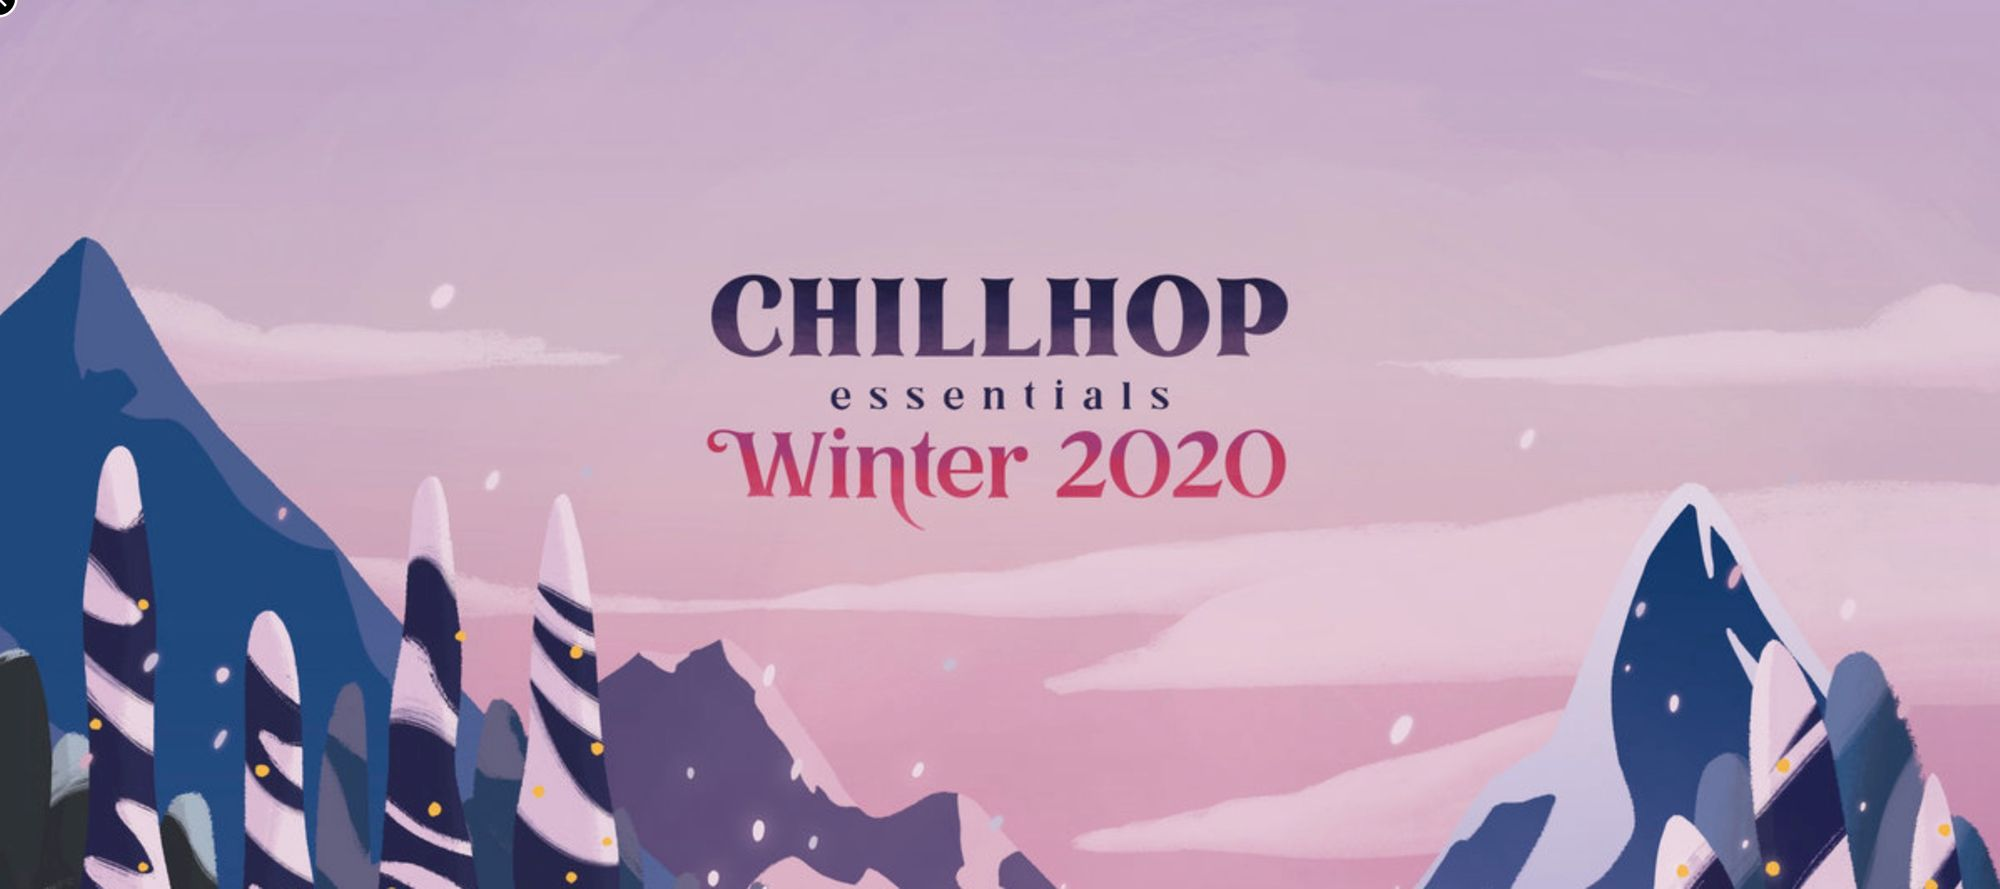 Chillhop Winter Essentials 2020